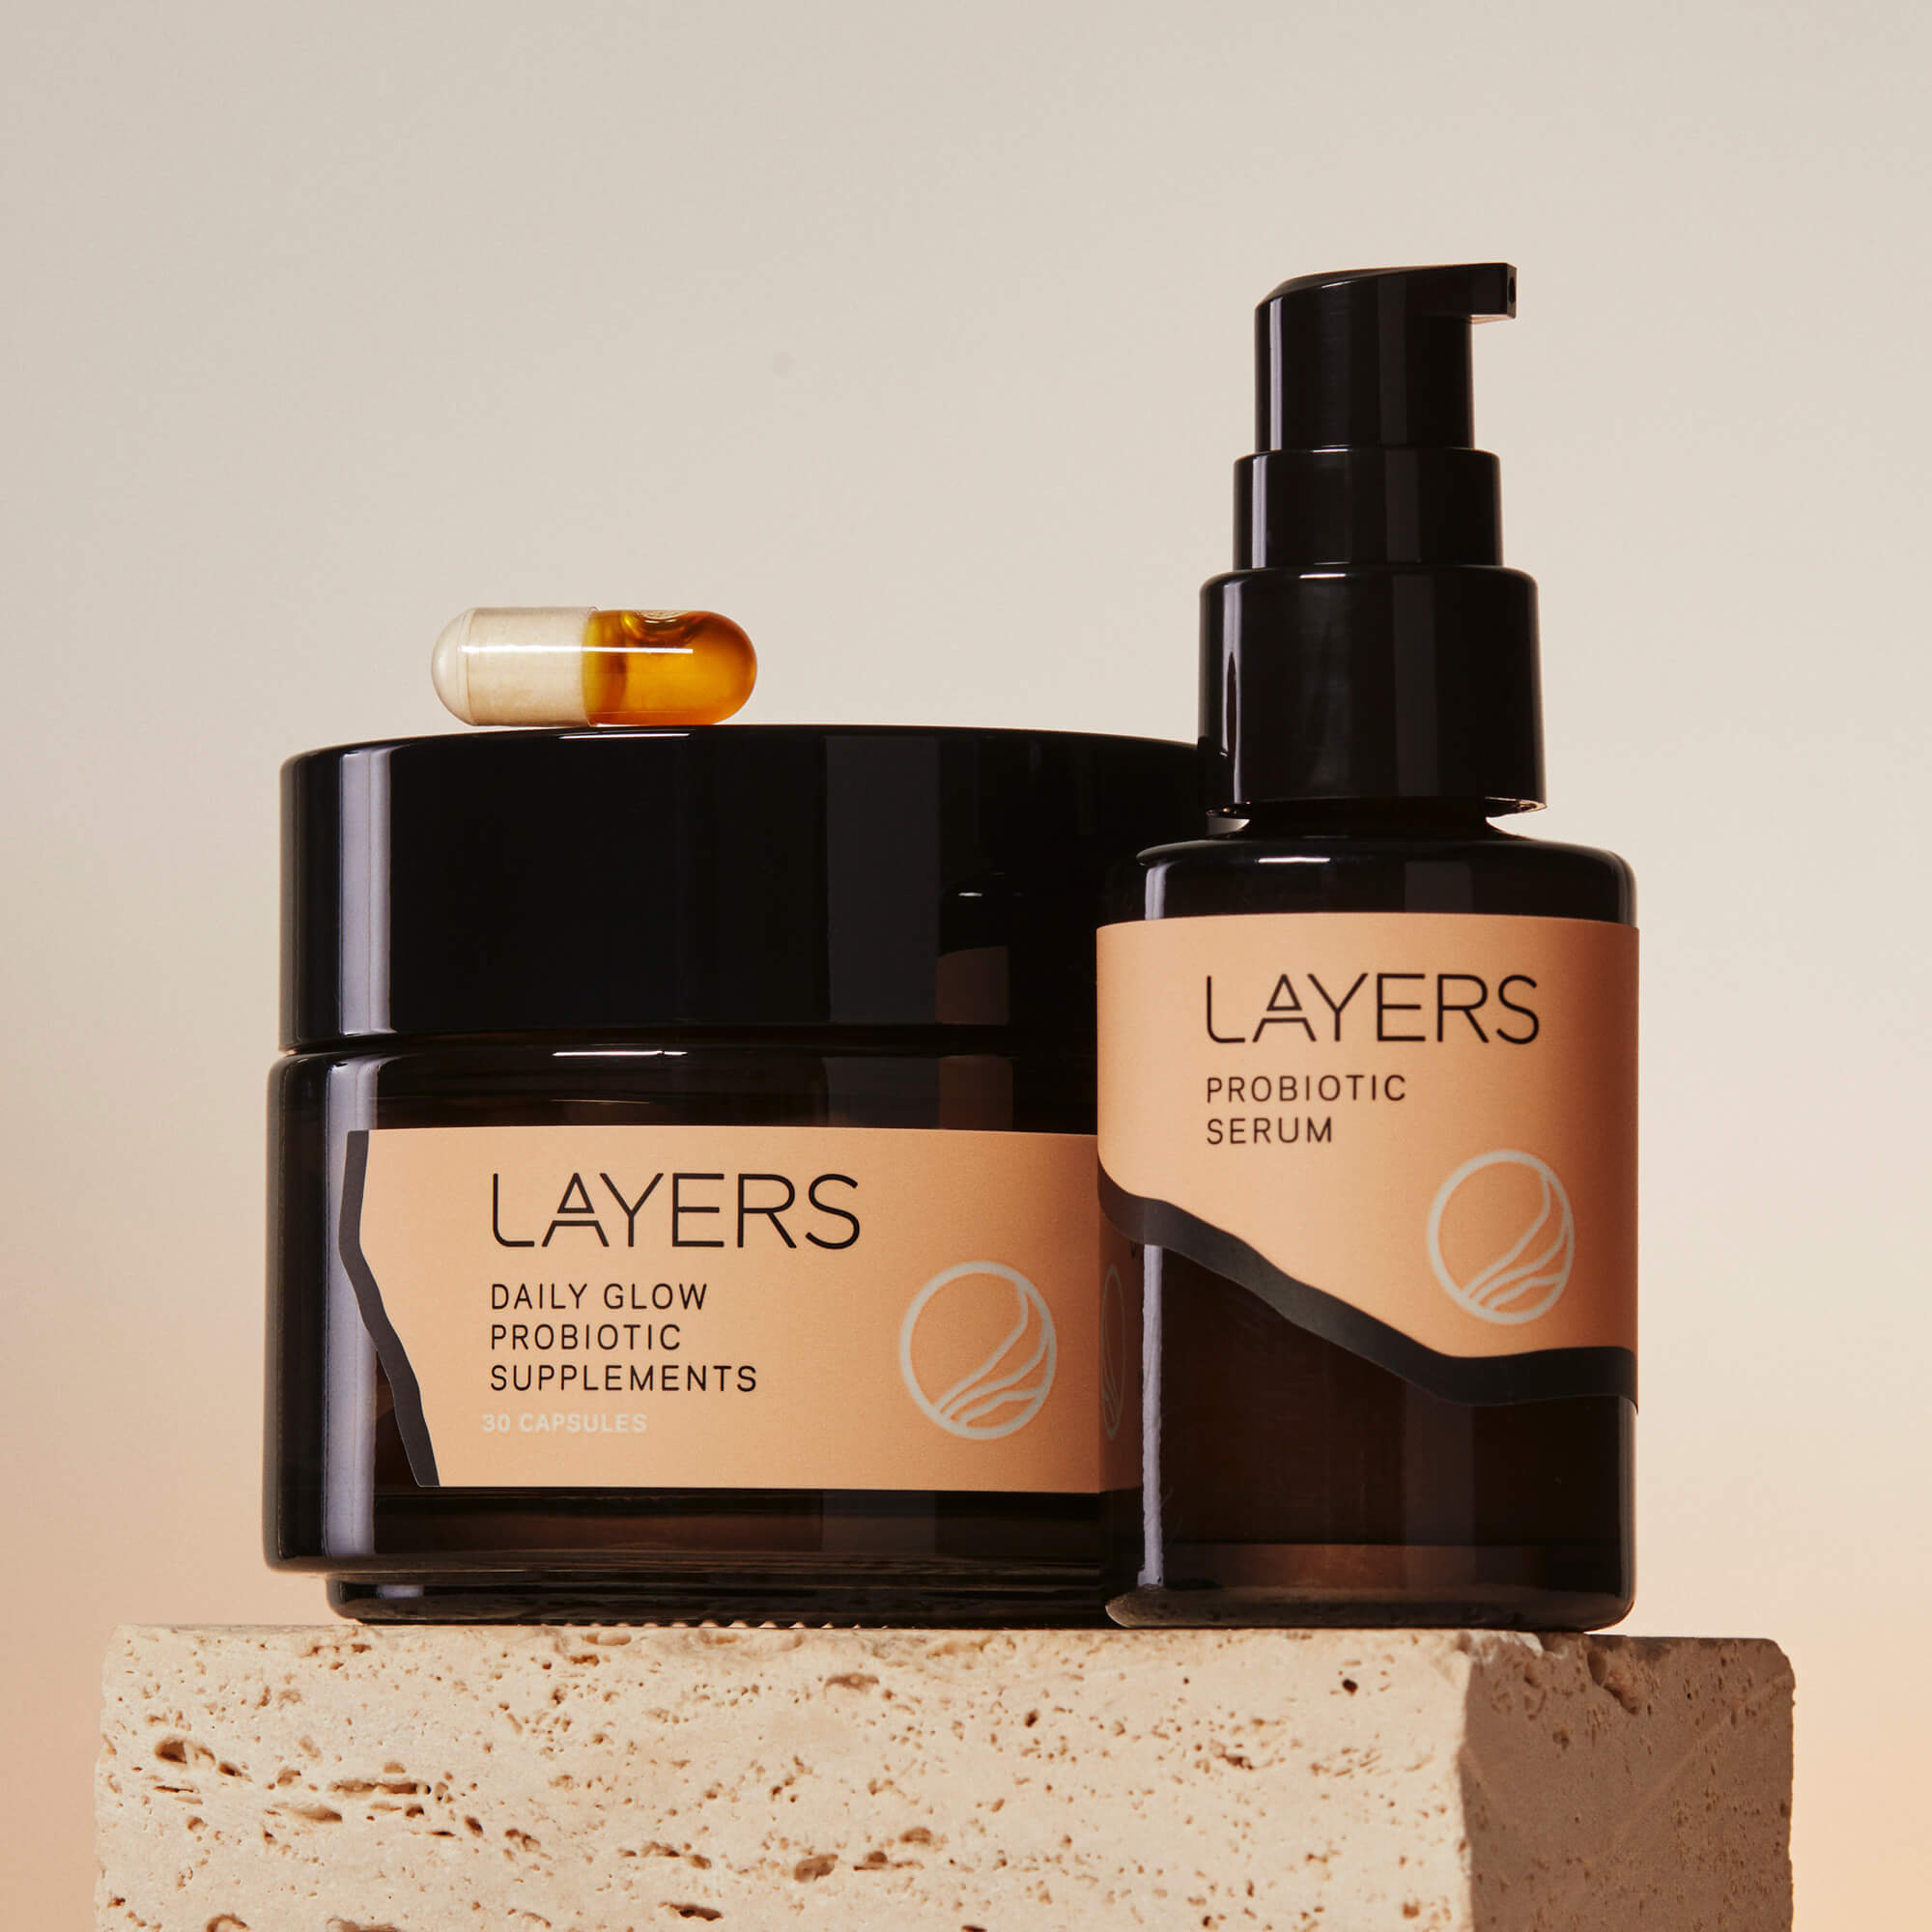 Layers Probiotic Skincare The Perfect Pair includes a 30-day jar of Daily Glow Probiotic Supplements plus a bottle of Probiotic Serum. This regimen works for dry, oily, and combination skin.